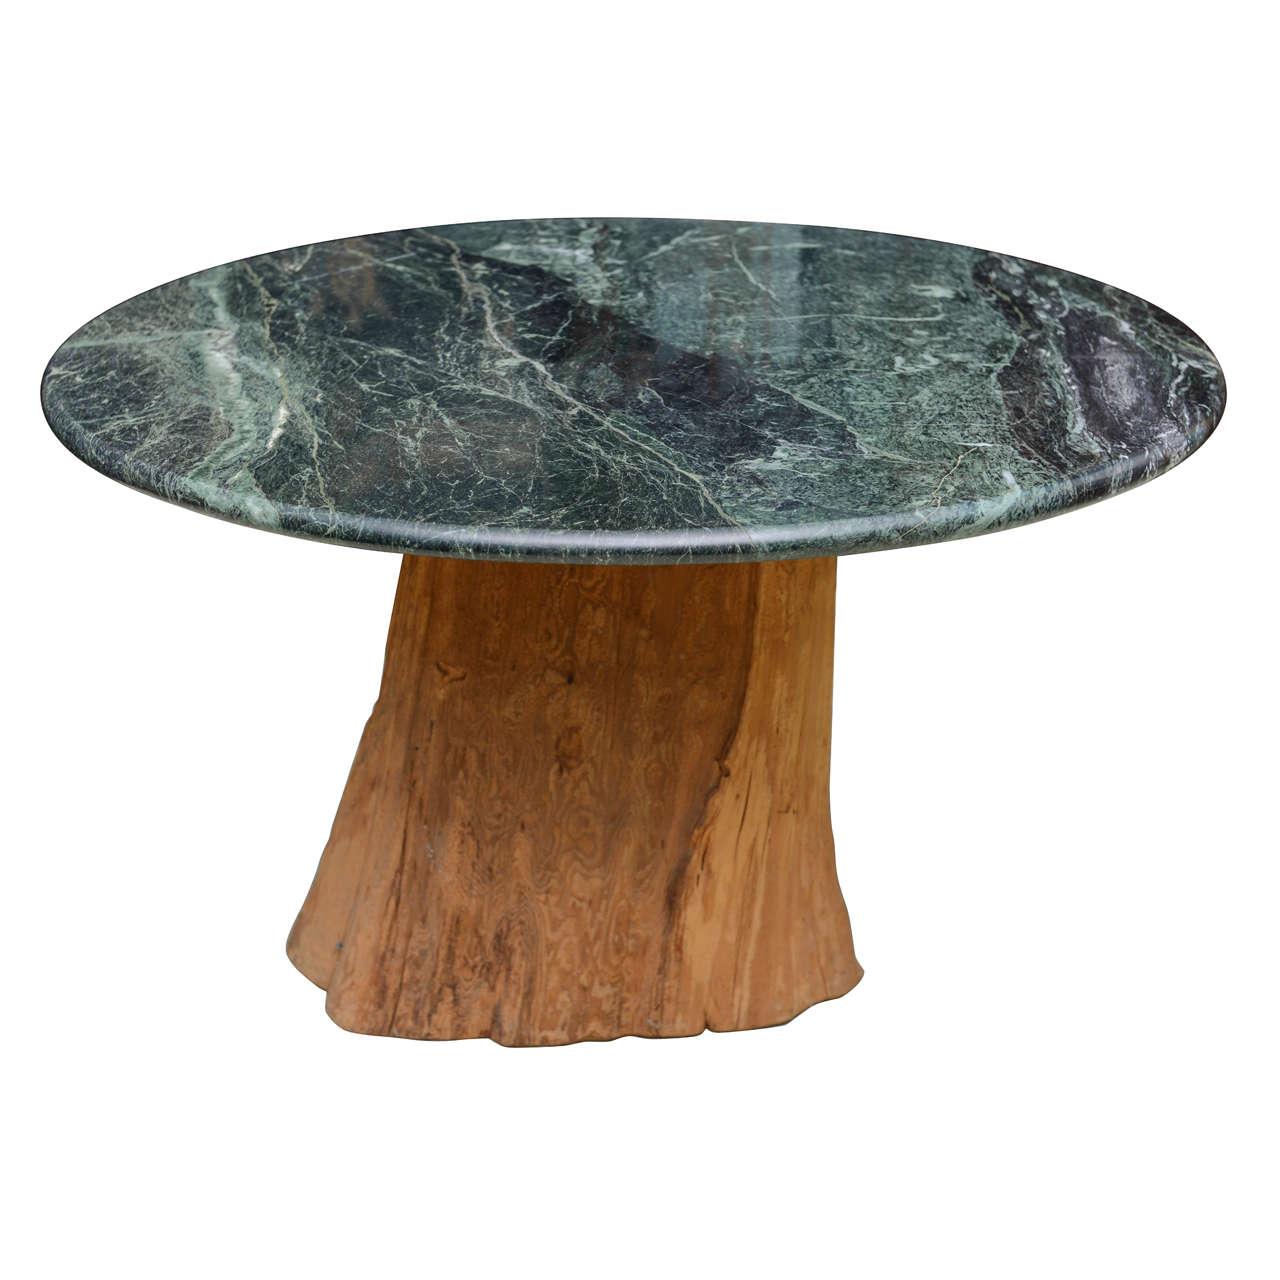 Chic Mid Century Modern Michael Taylor Tree Trunk Marble